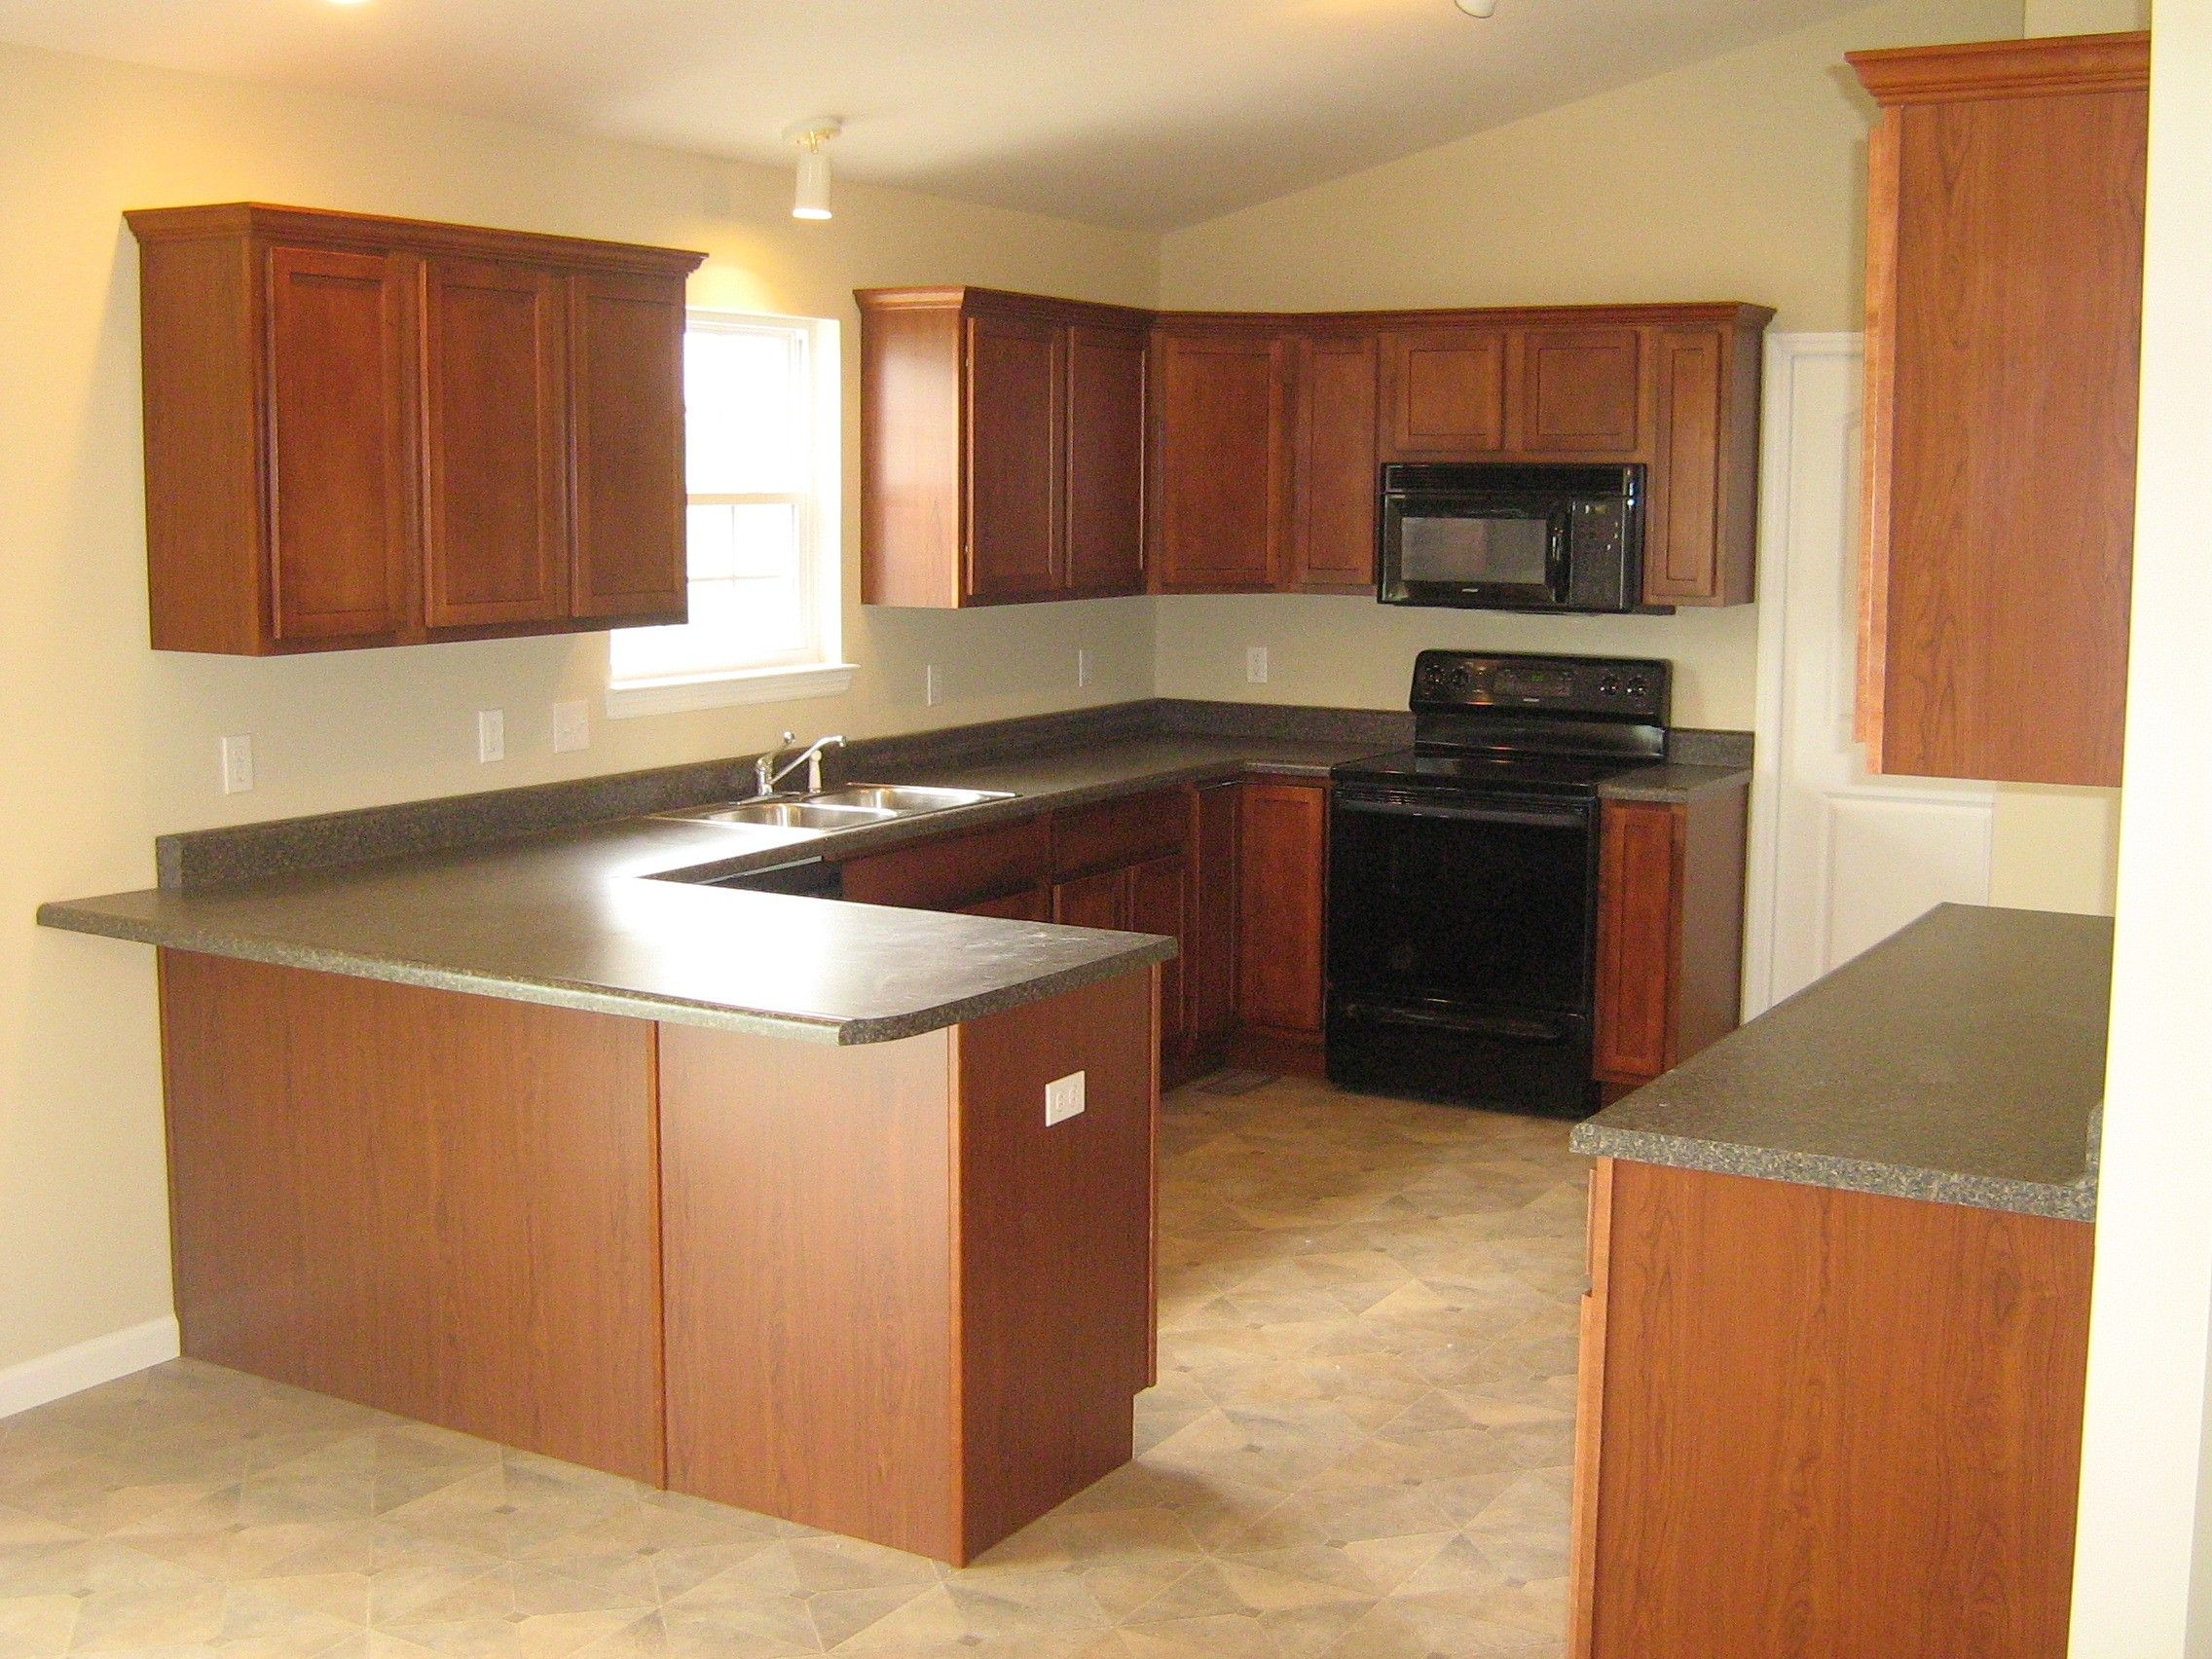 Kitchen featured in The Vinho By Cannon Builders, Inc.  in St. Louis, MO